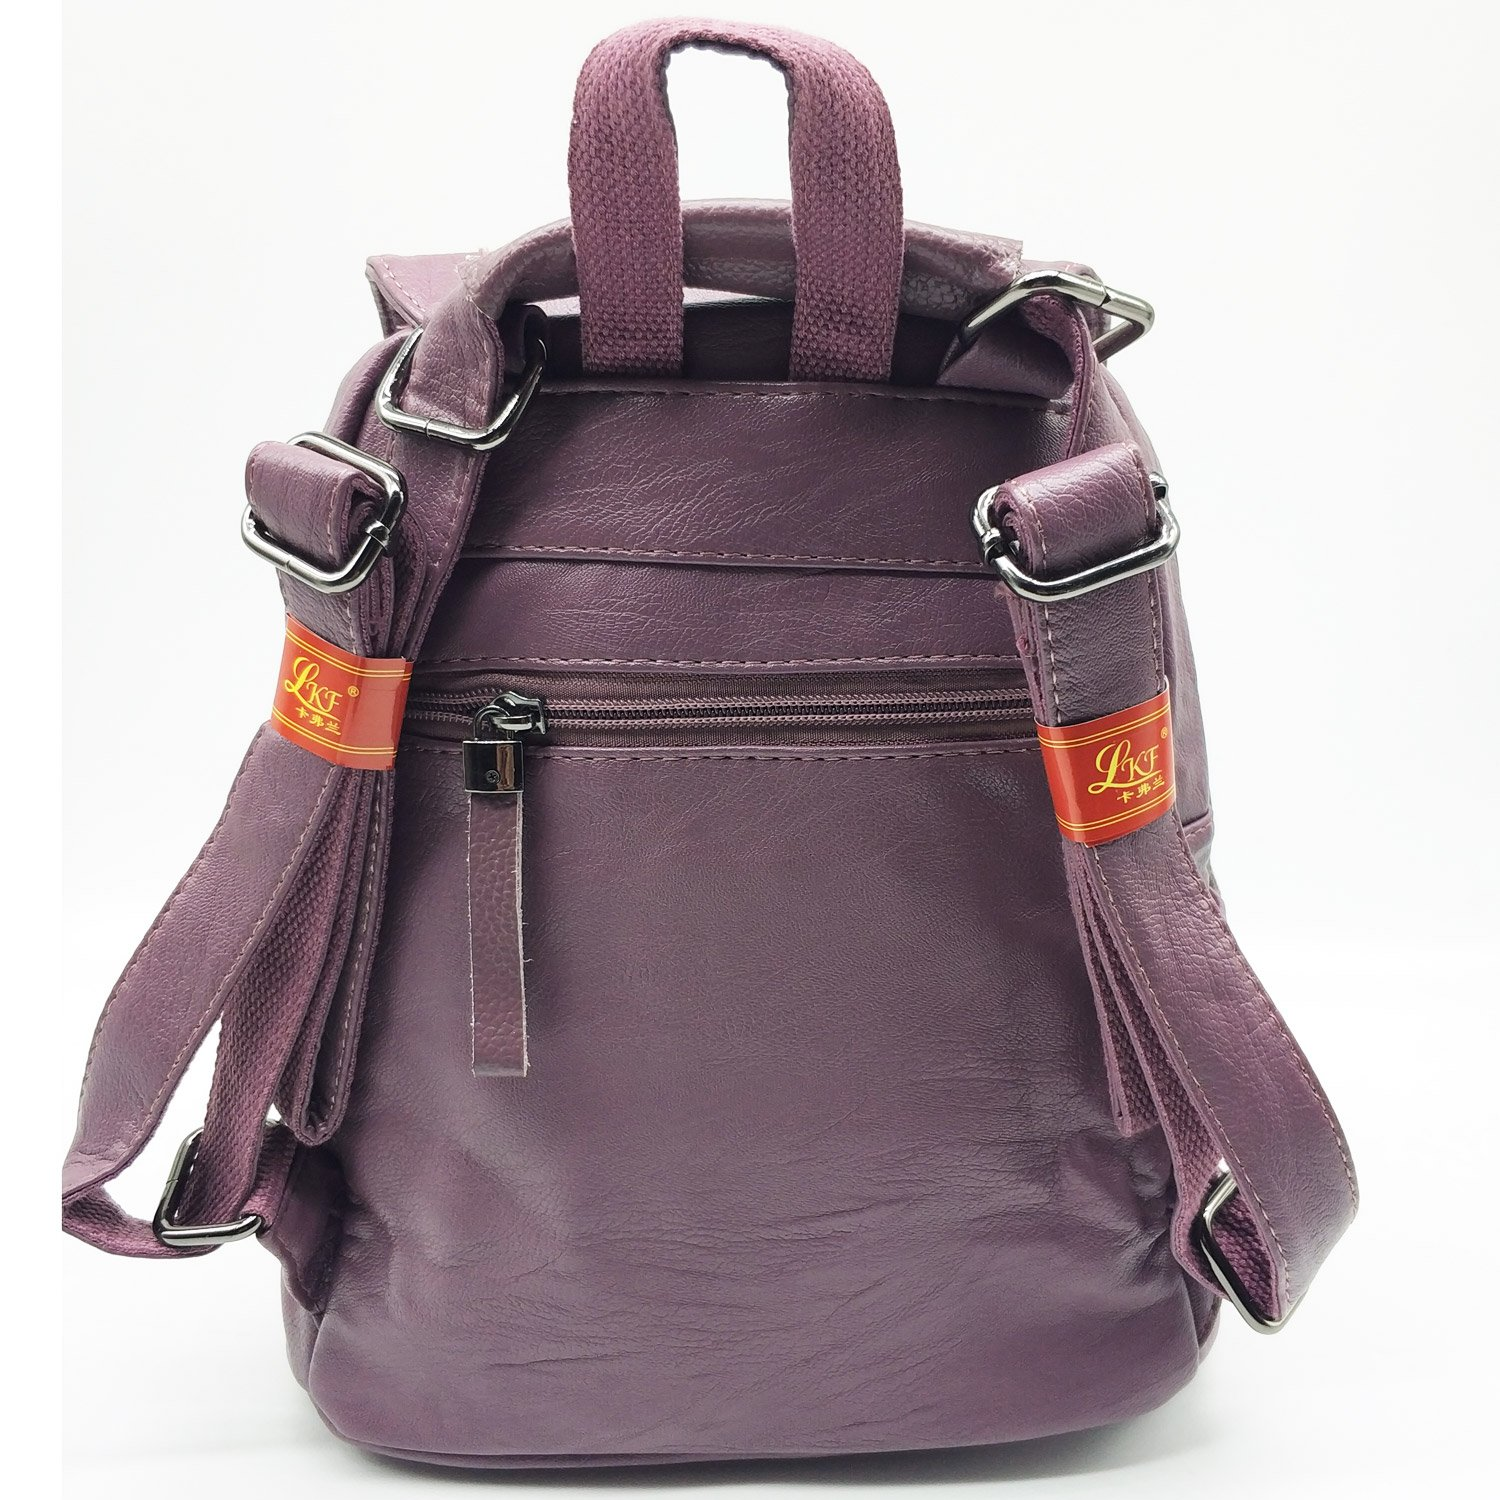 a871c8904695 Mua sản phẩm Xuaber Women Backpack Genuine Leather Casual Daypack ...